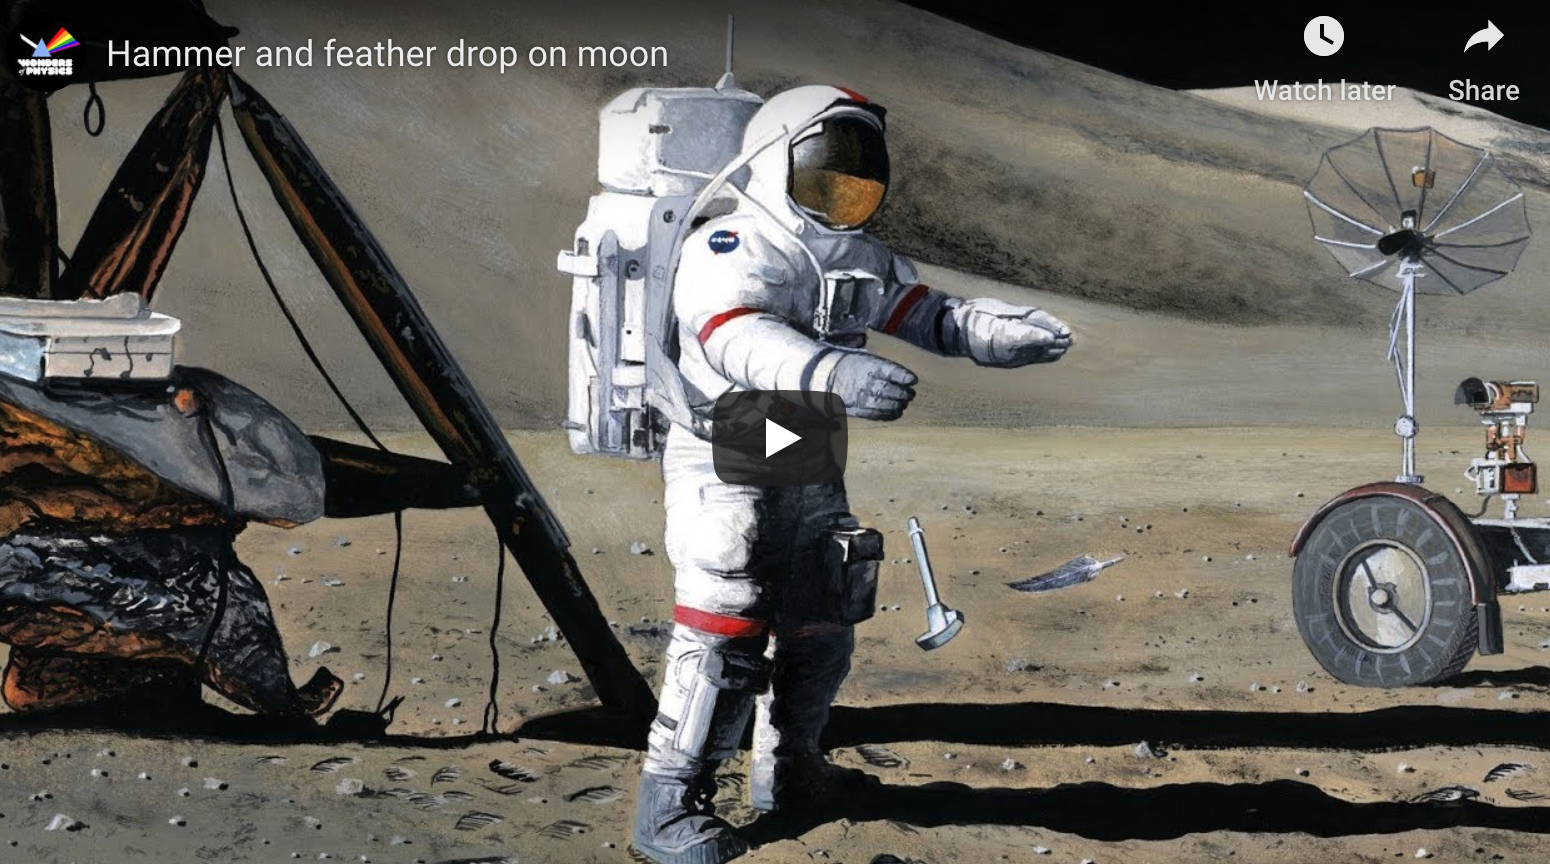 What Happens When You Drop A Feather And A Hammer At The Same Time On The Moon?